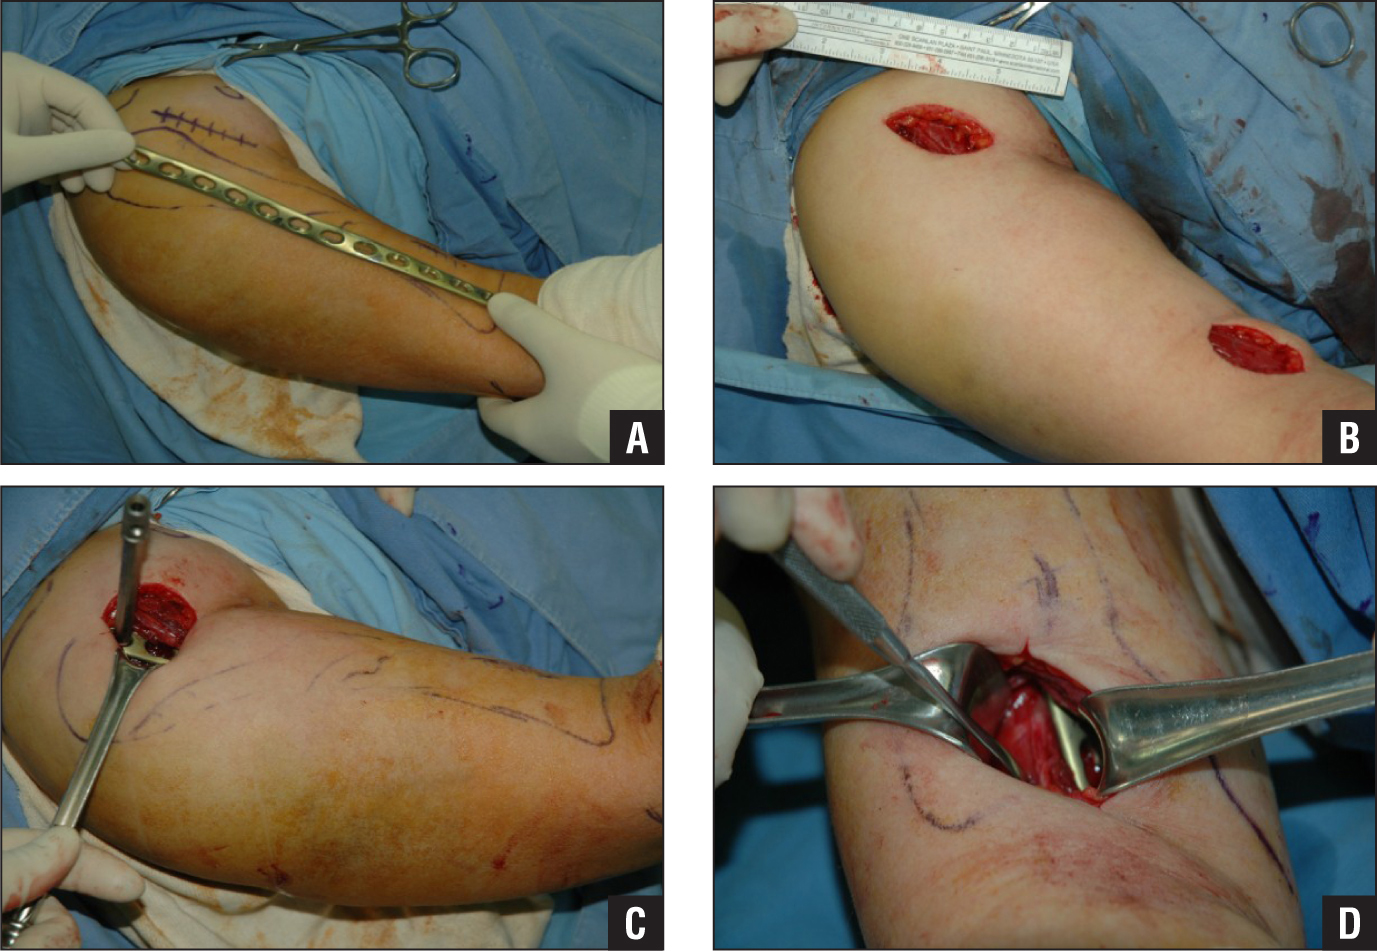 The position of a precontoured helical plate is checked (A). Two separate small incisions in the minimally invasive plate osteosynthesis technique (B). A proximal incision with a deltopectoral approach and a plate with a drill sleeve (C). A distal incision with a brachialis-splitting approach and a plate on the anterior aspect of the humerus (D).